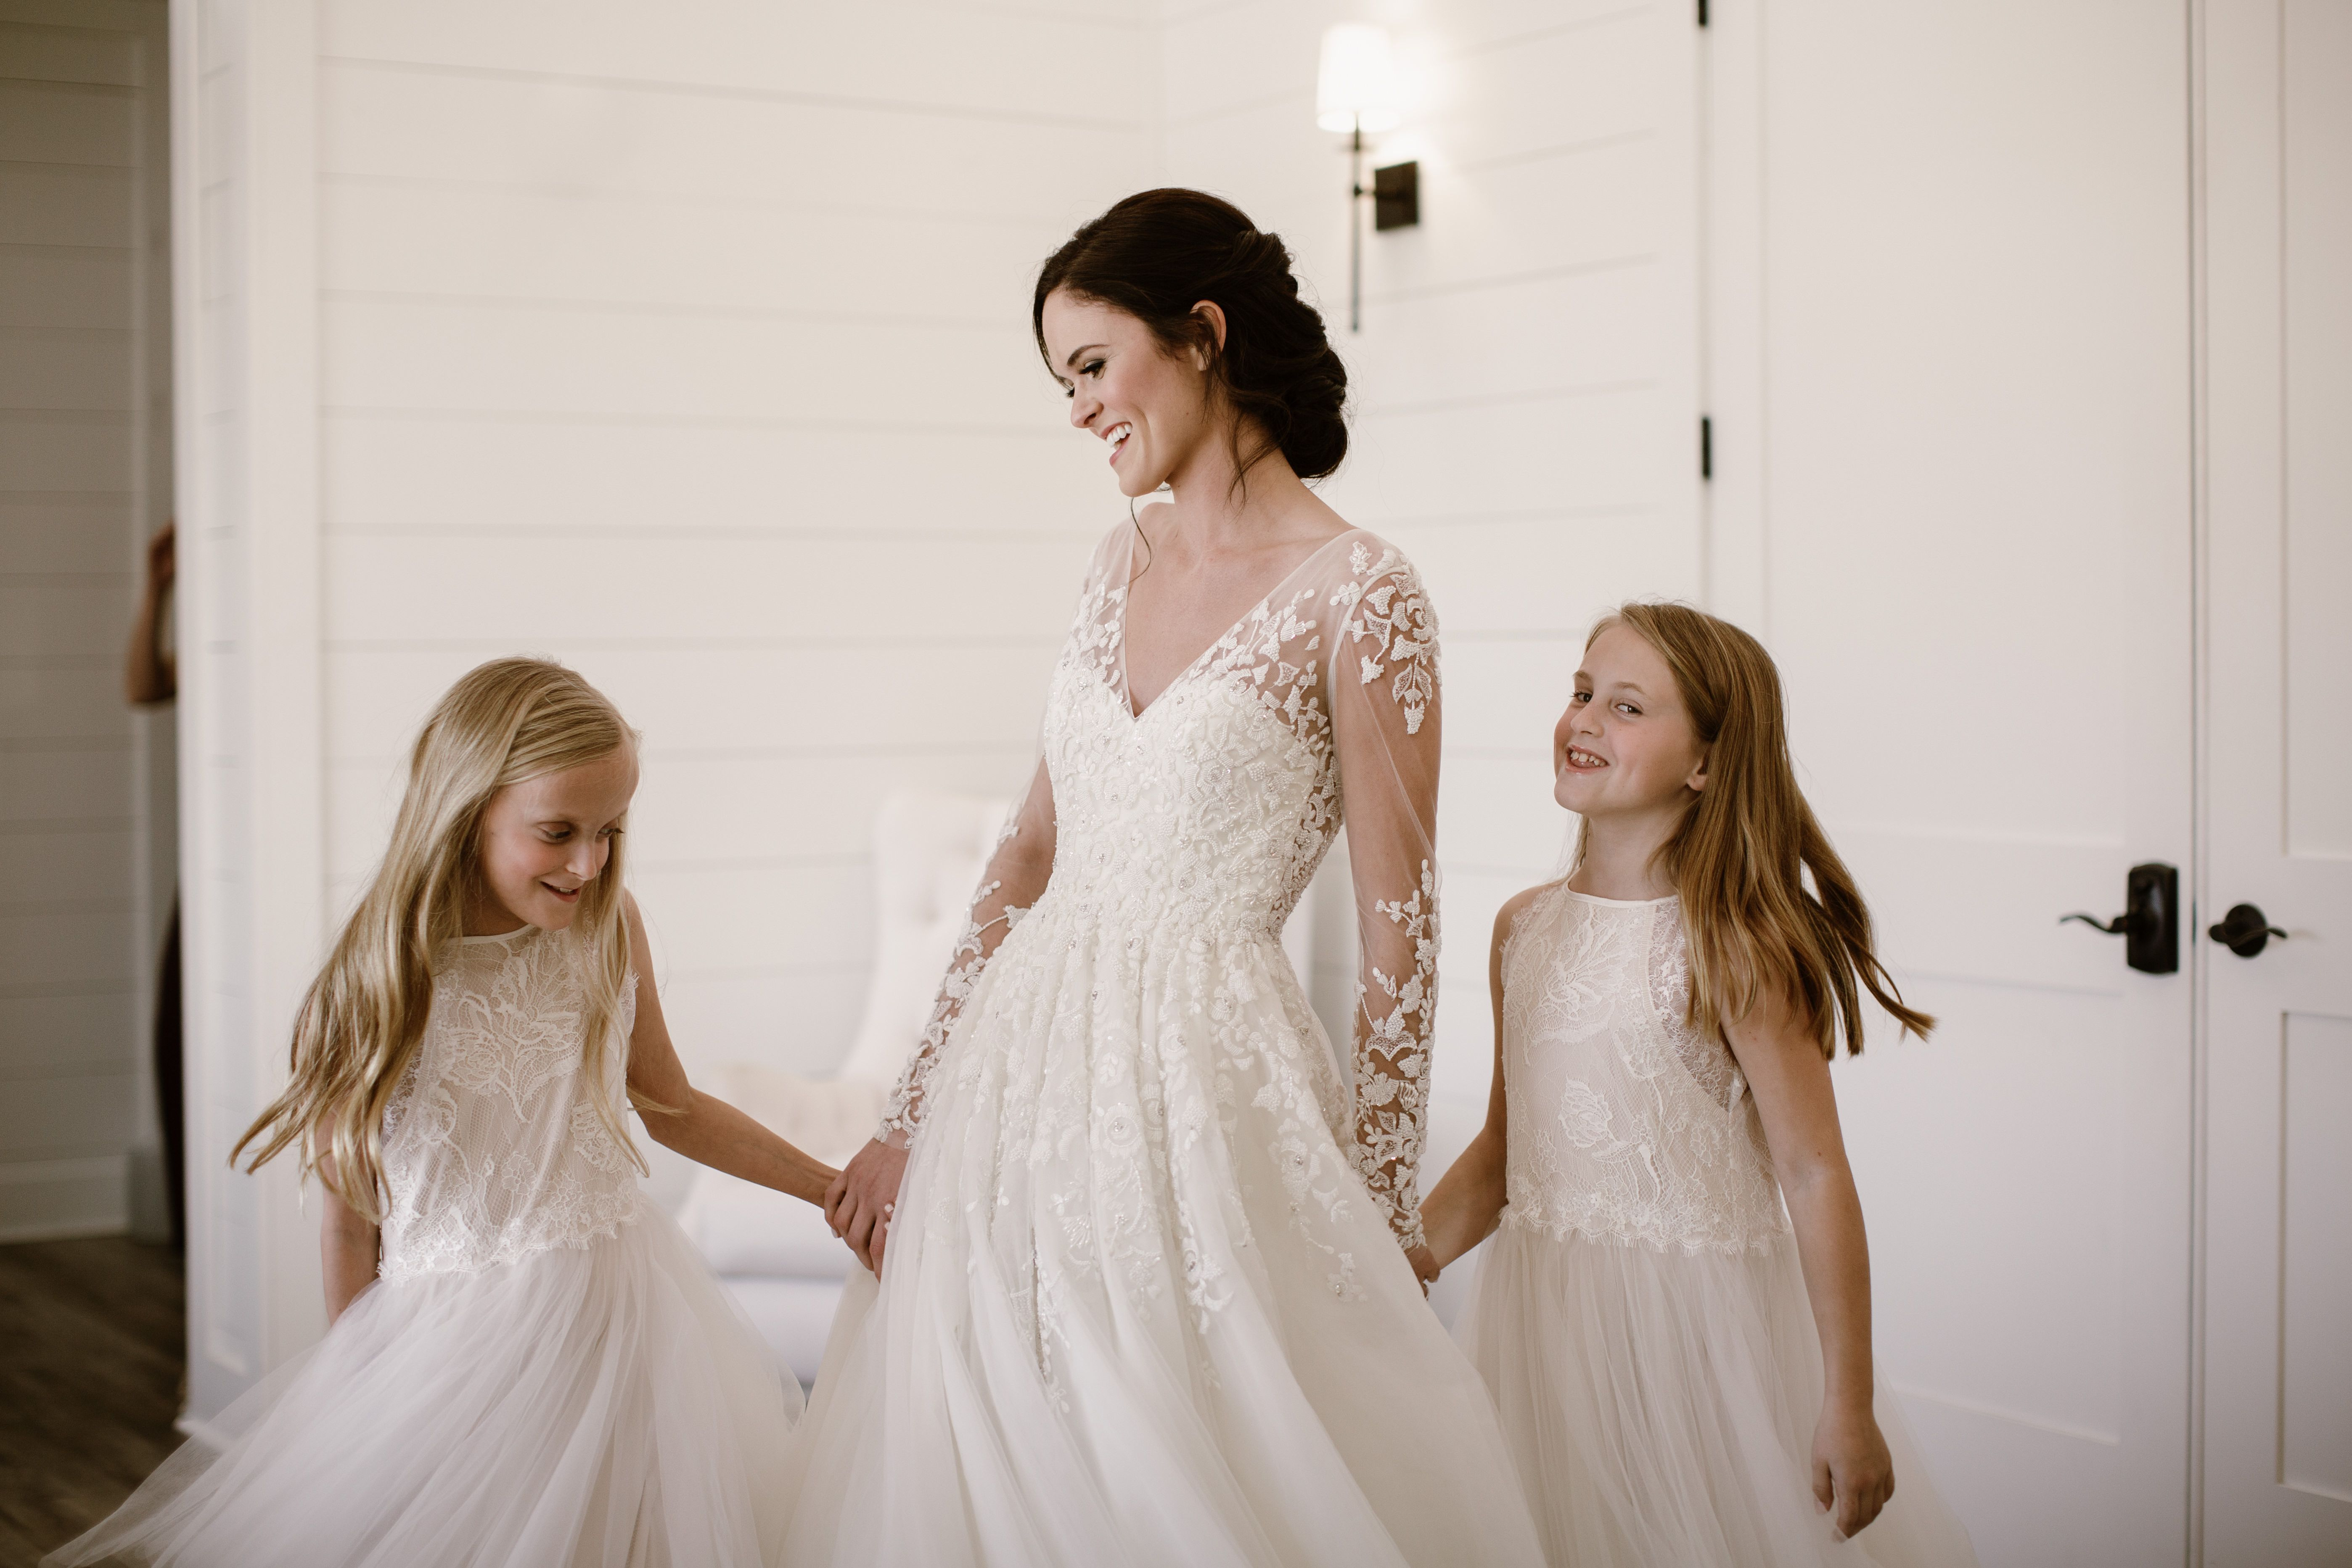 The ultimate squad goals ud a bride and her flower girls